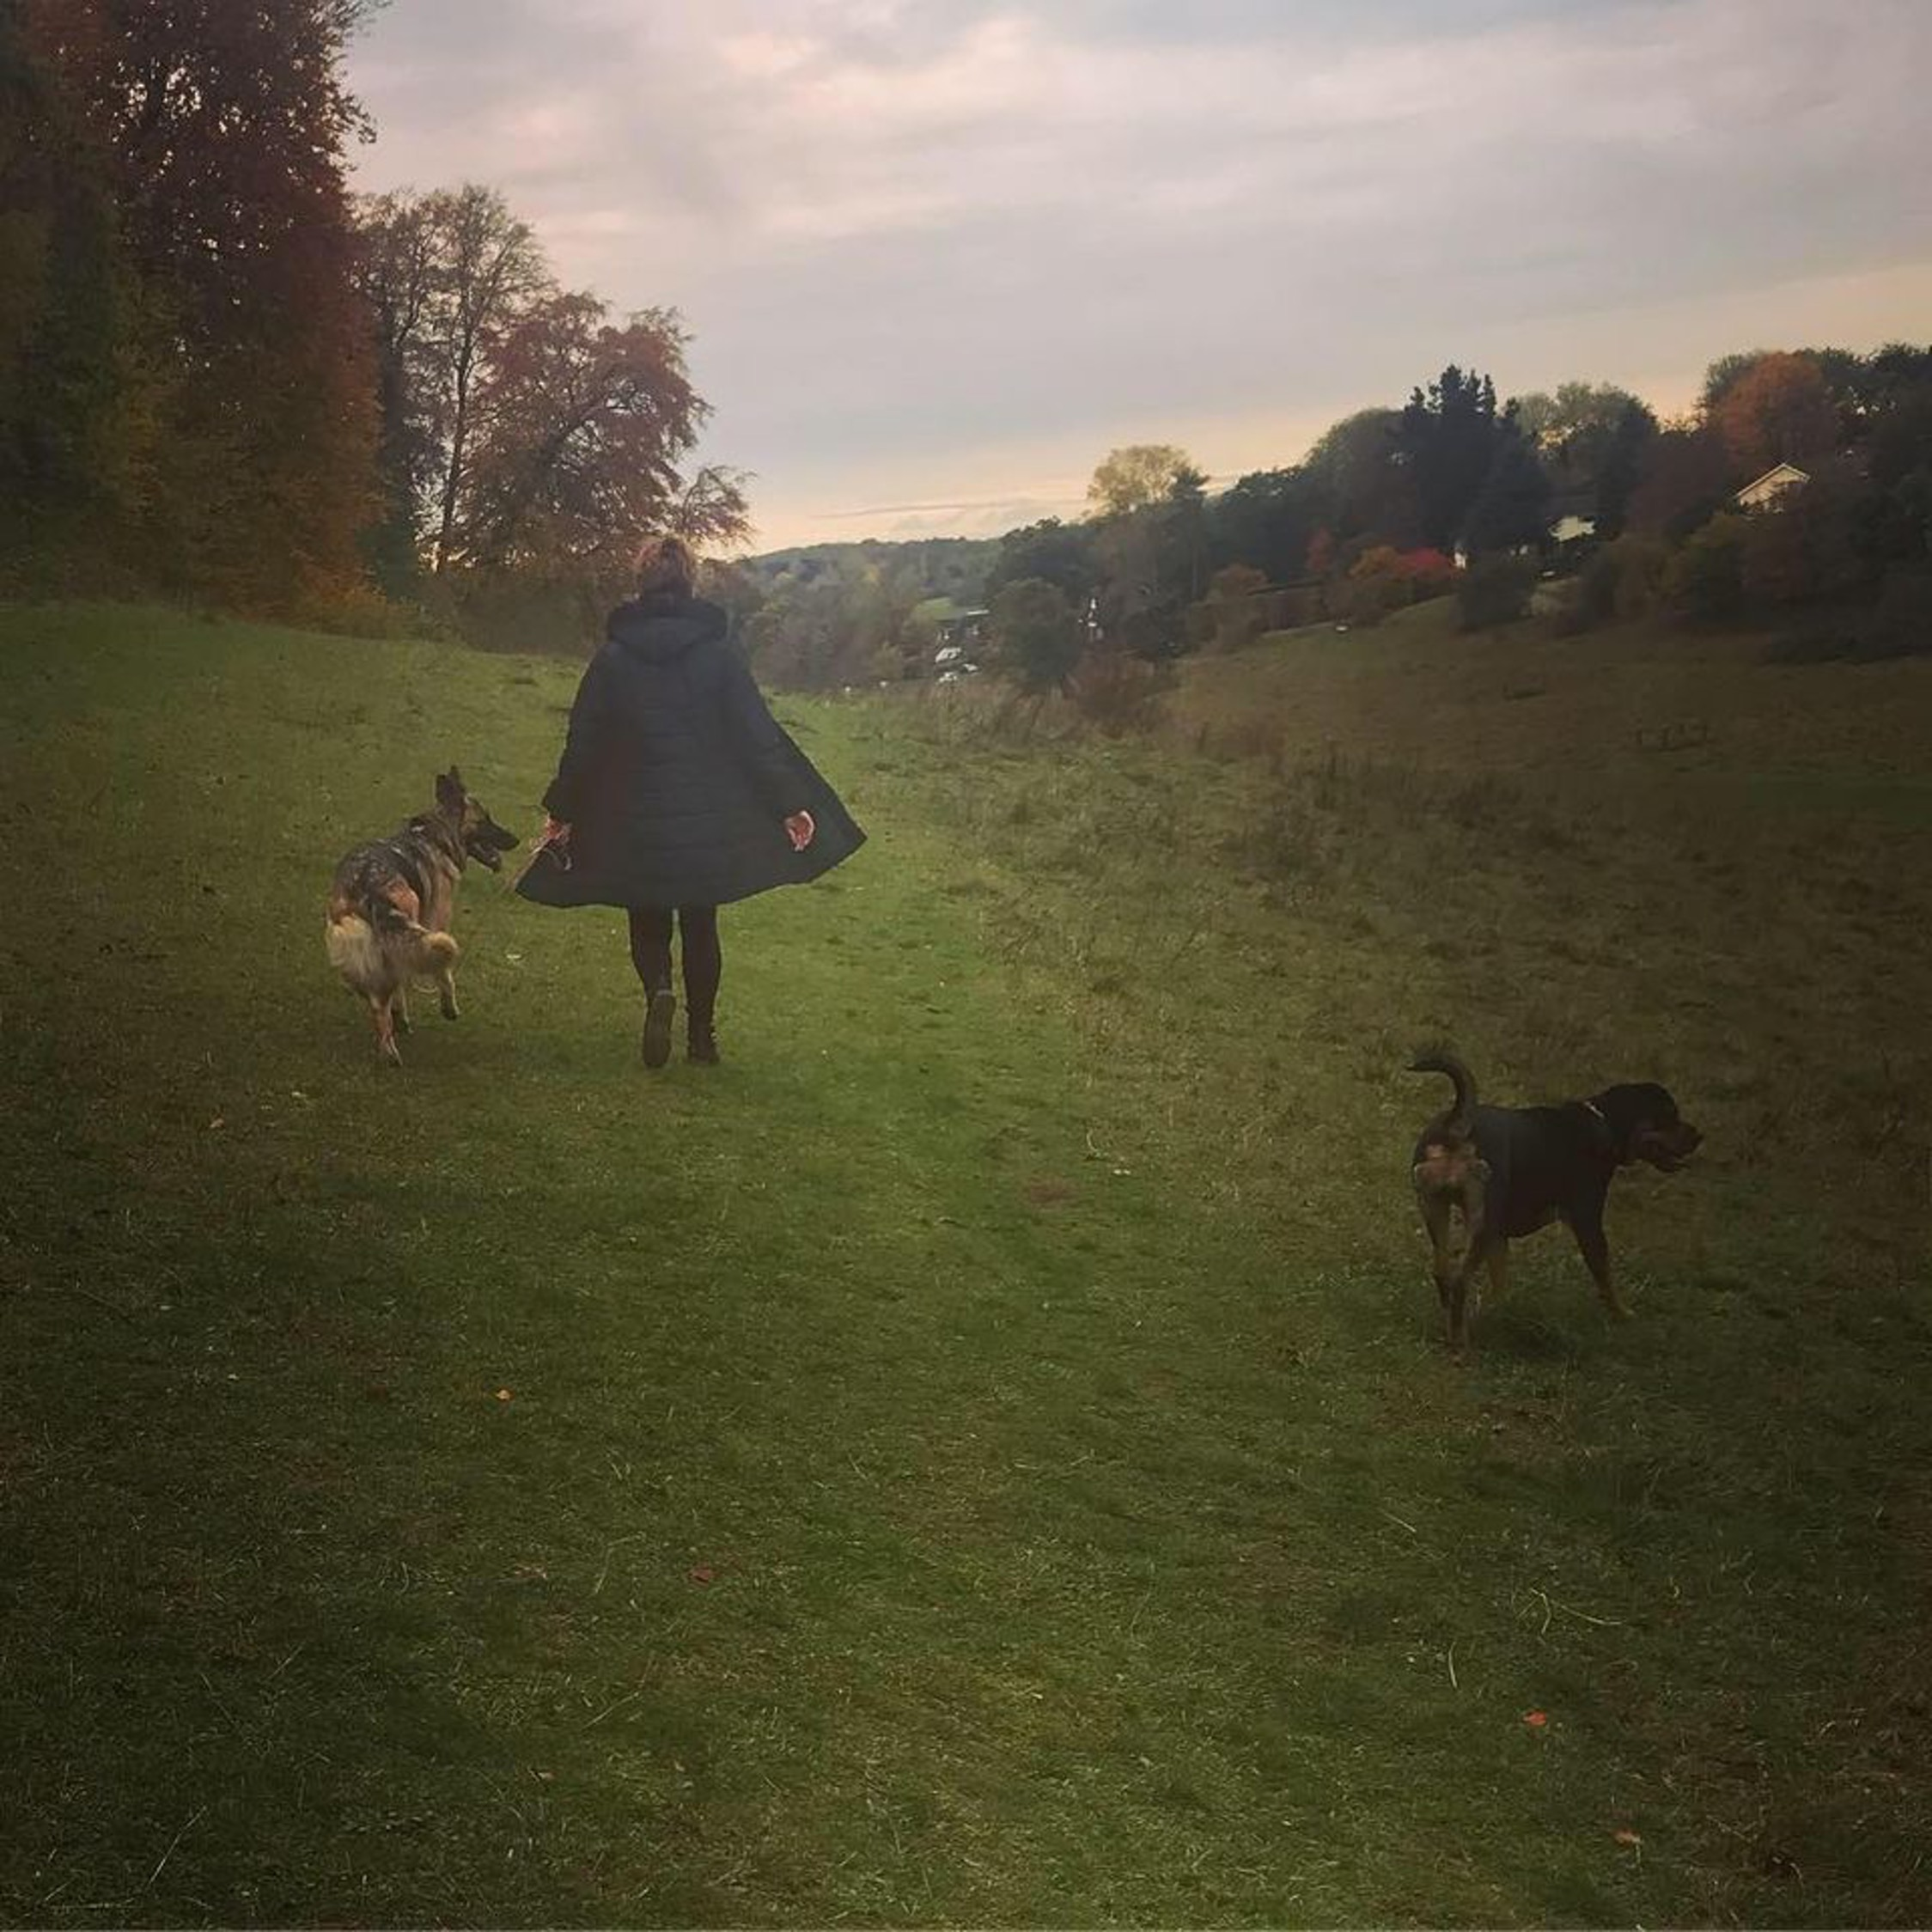 herts hiking hounds dog walking walker and training abbots kings langley hertfordshire pet photography8